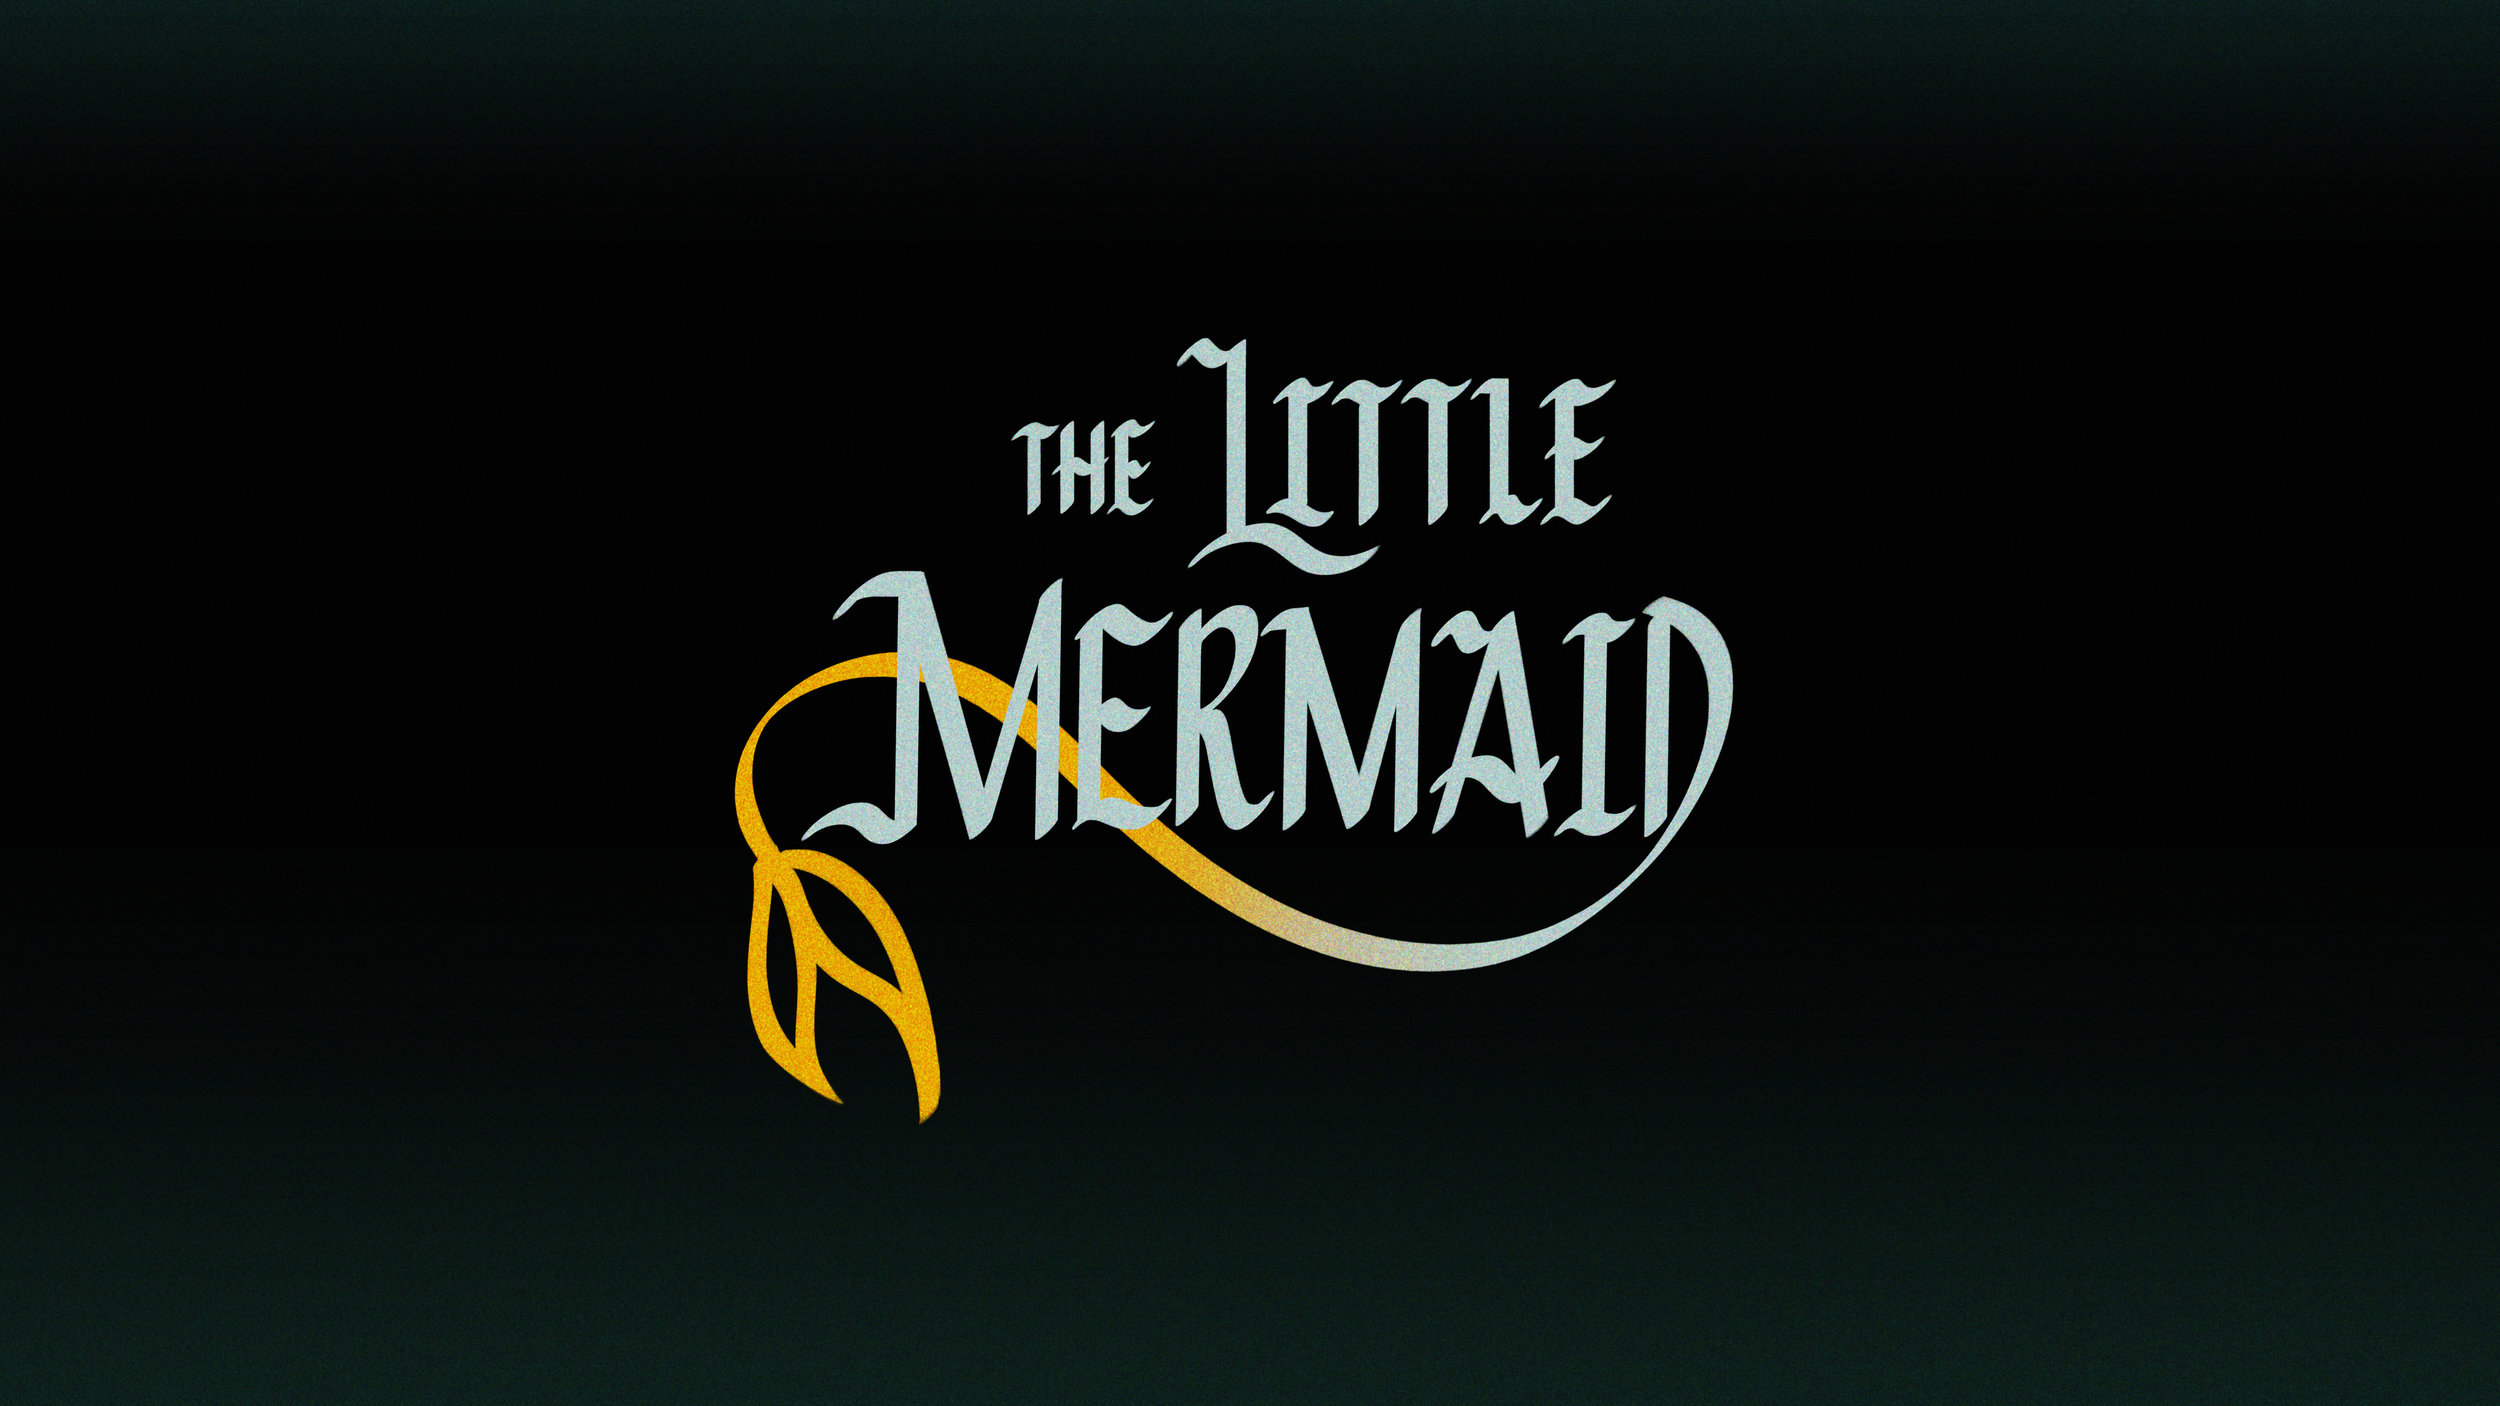 the little mermaid title.jpg